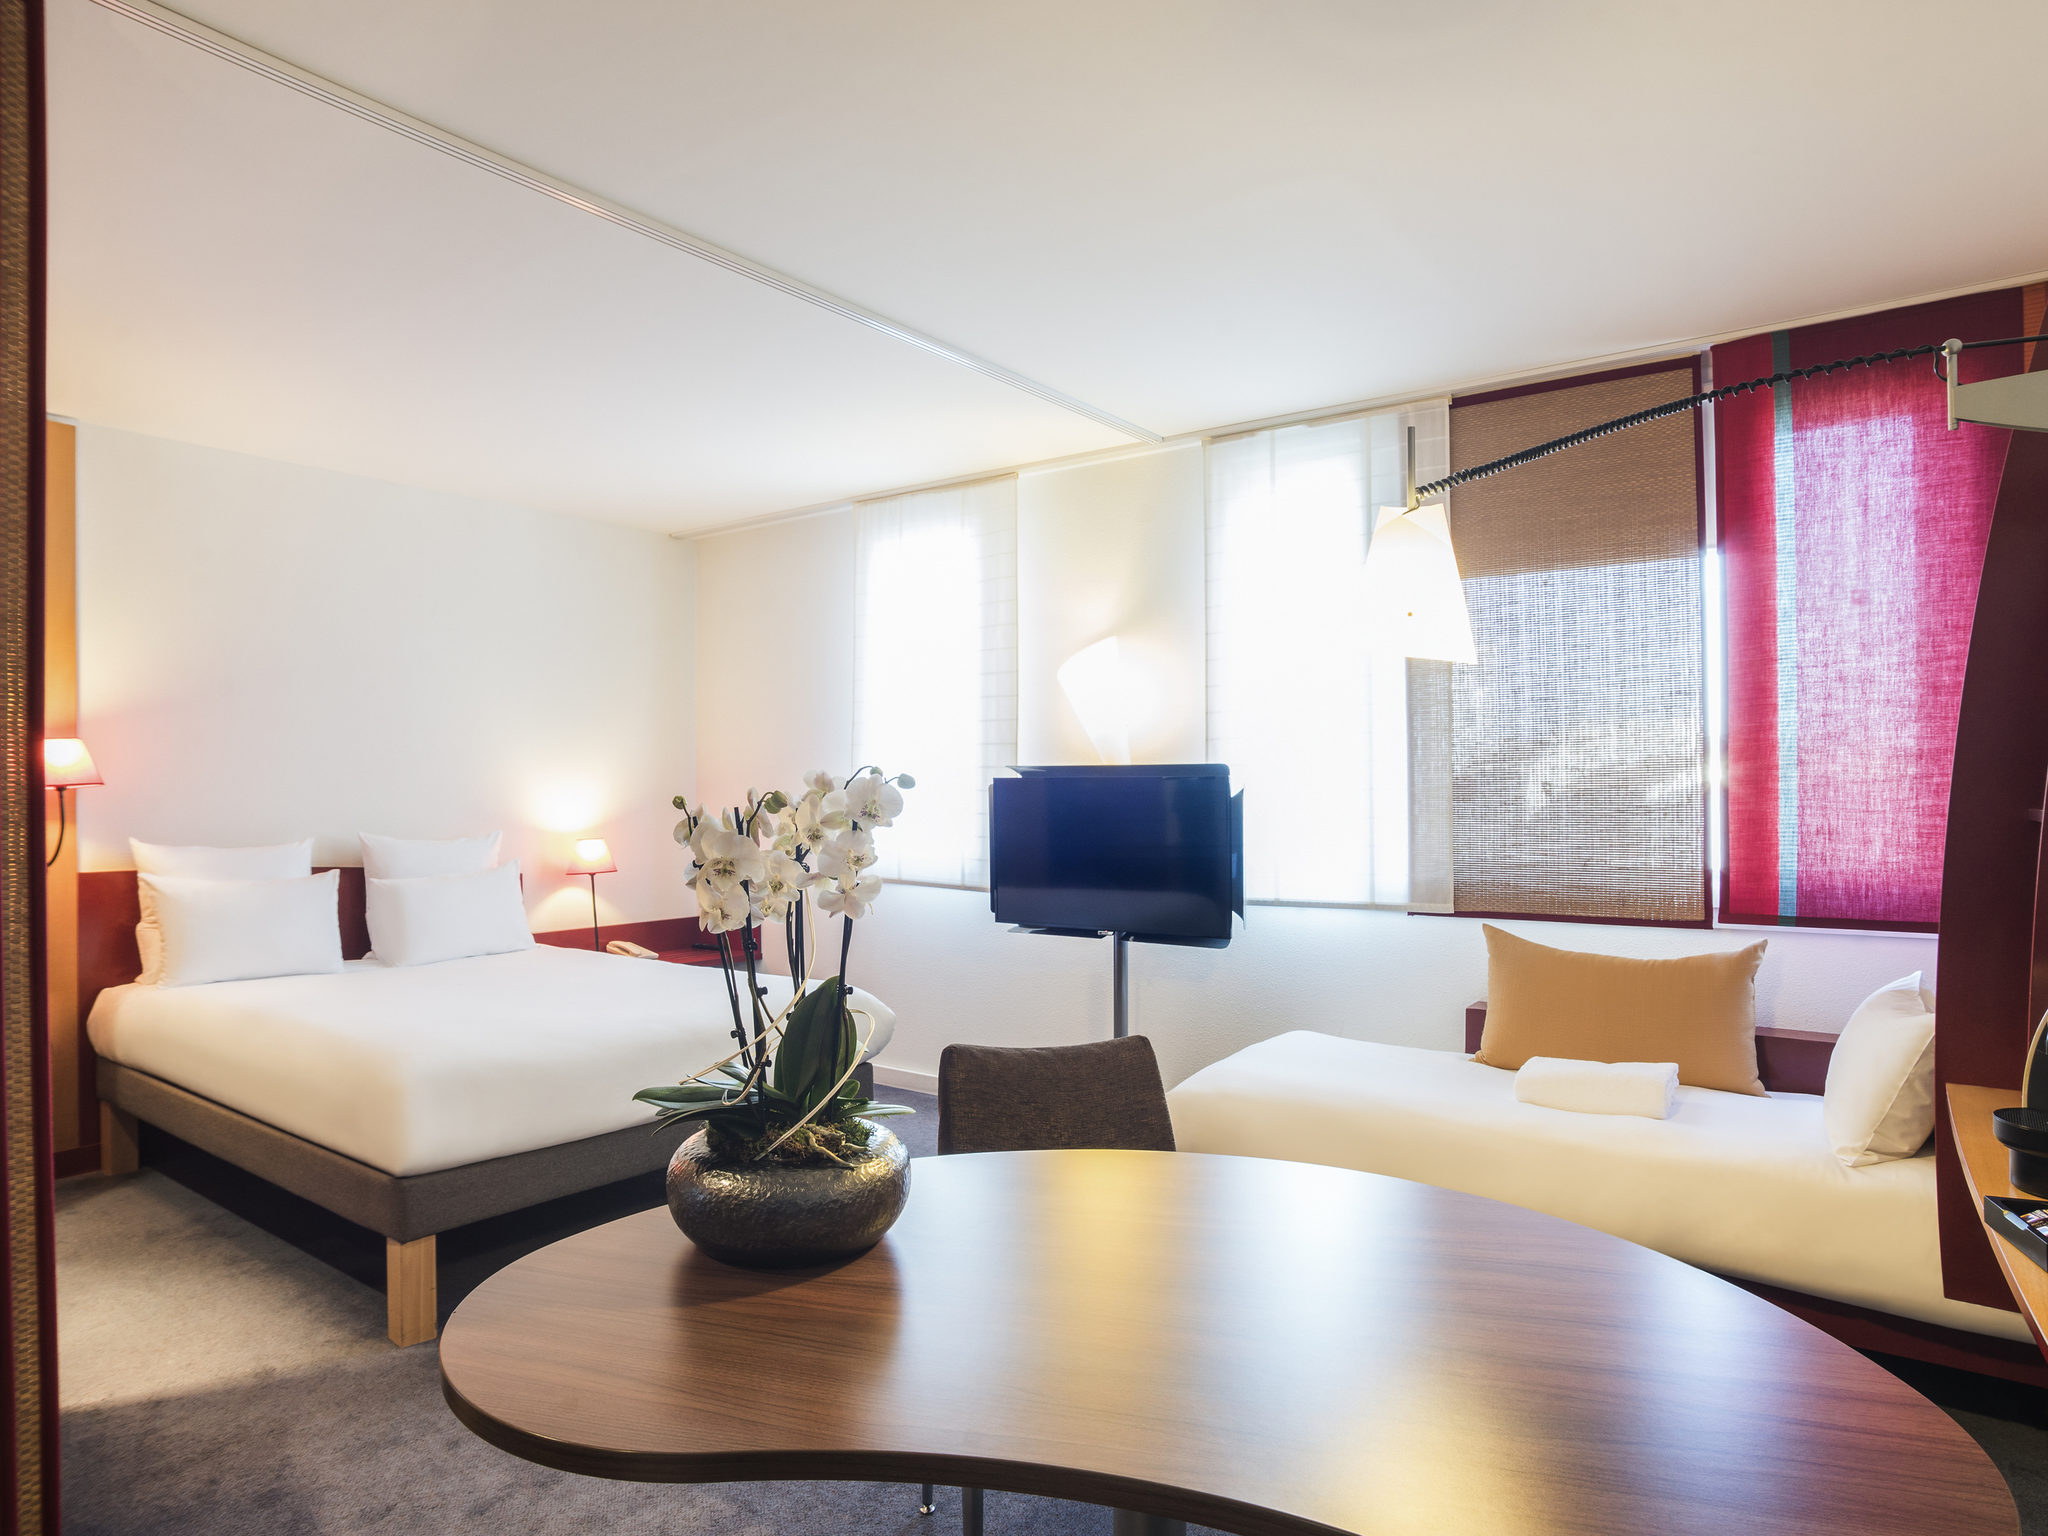 Hotel – Novotel Suites Reims Centre